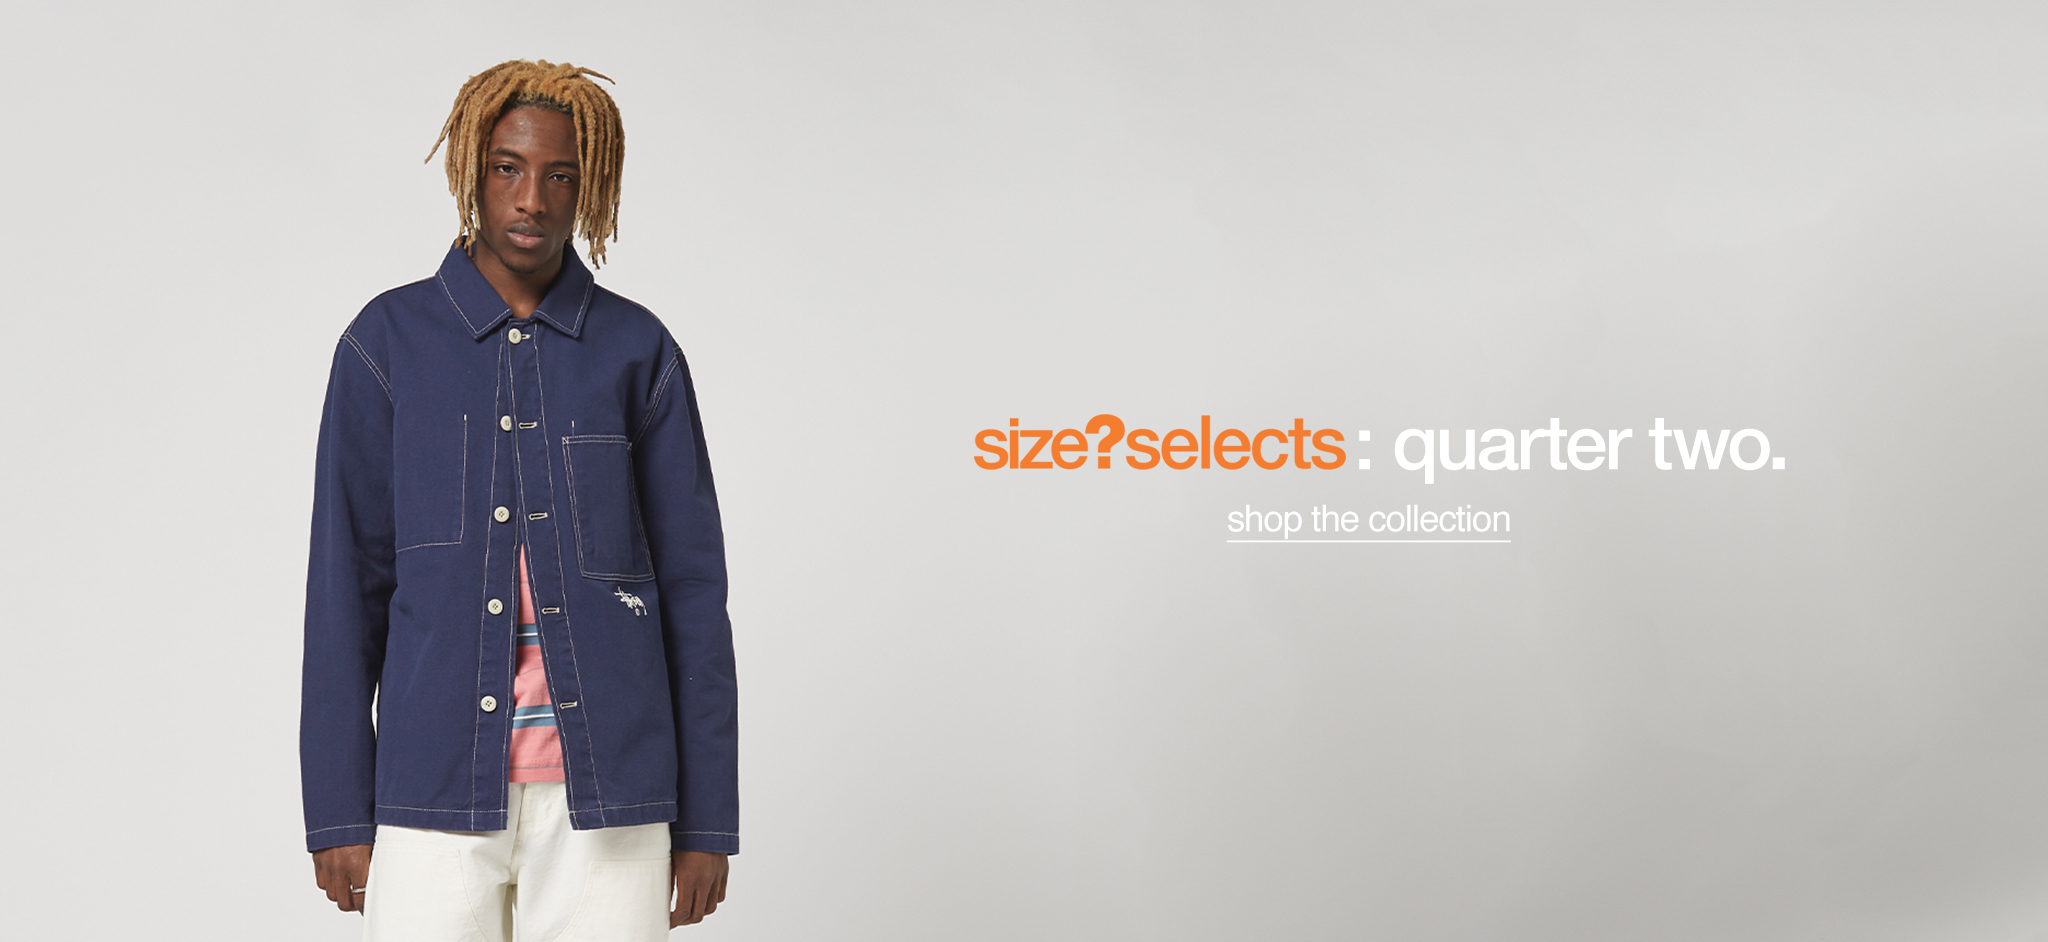 size?selects Q